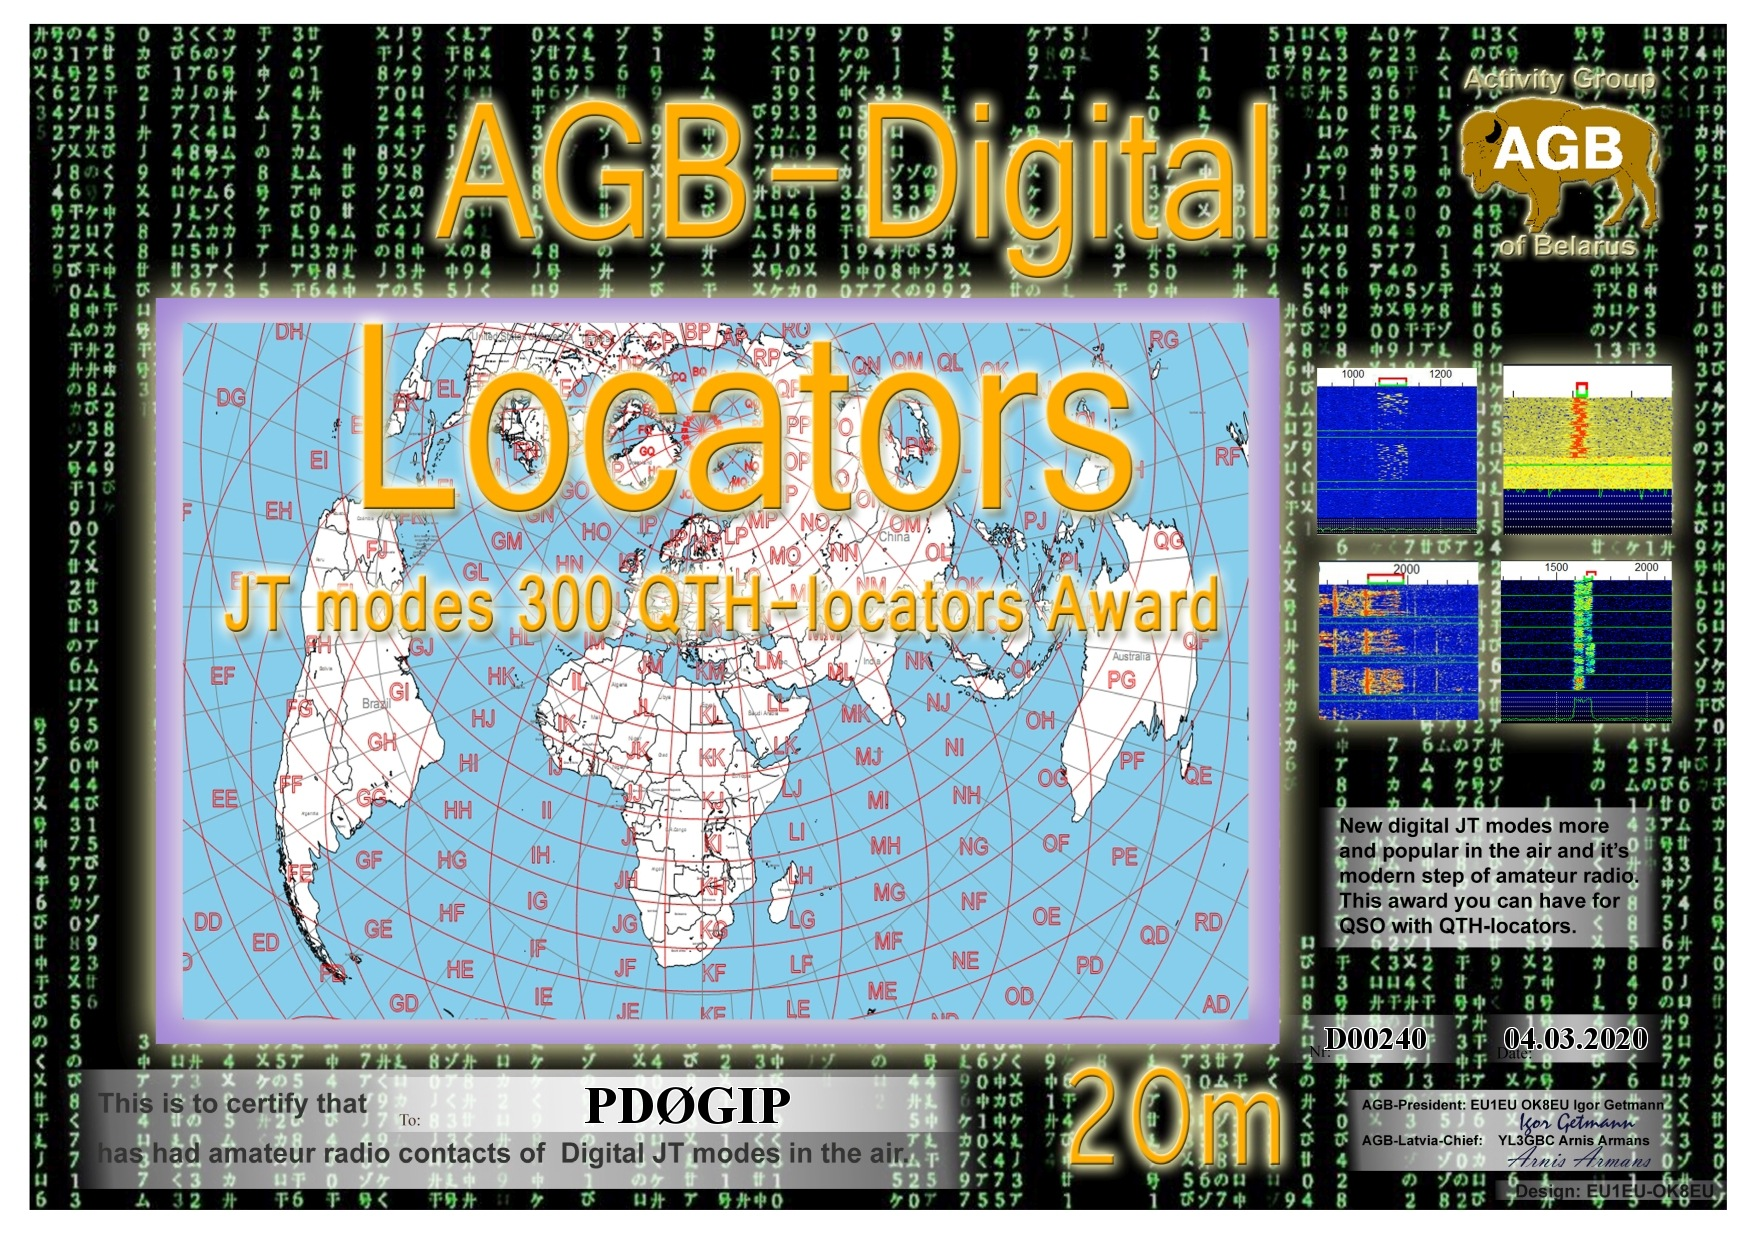 PD0GIP LOCATORS 20M 300 AGB